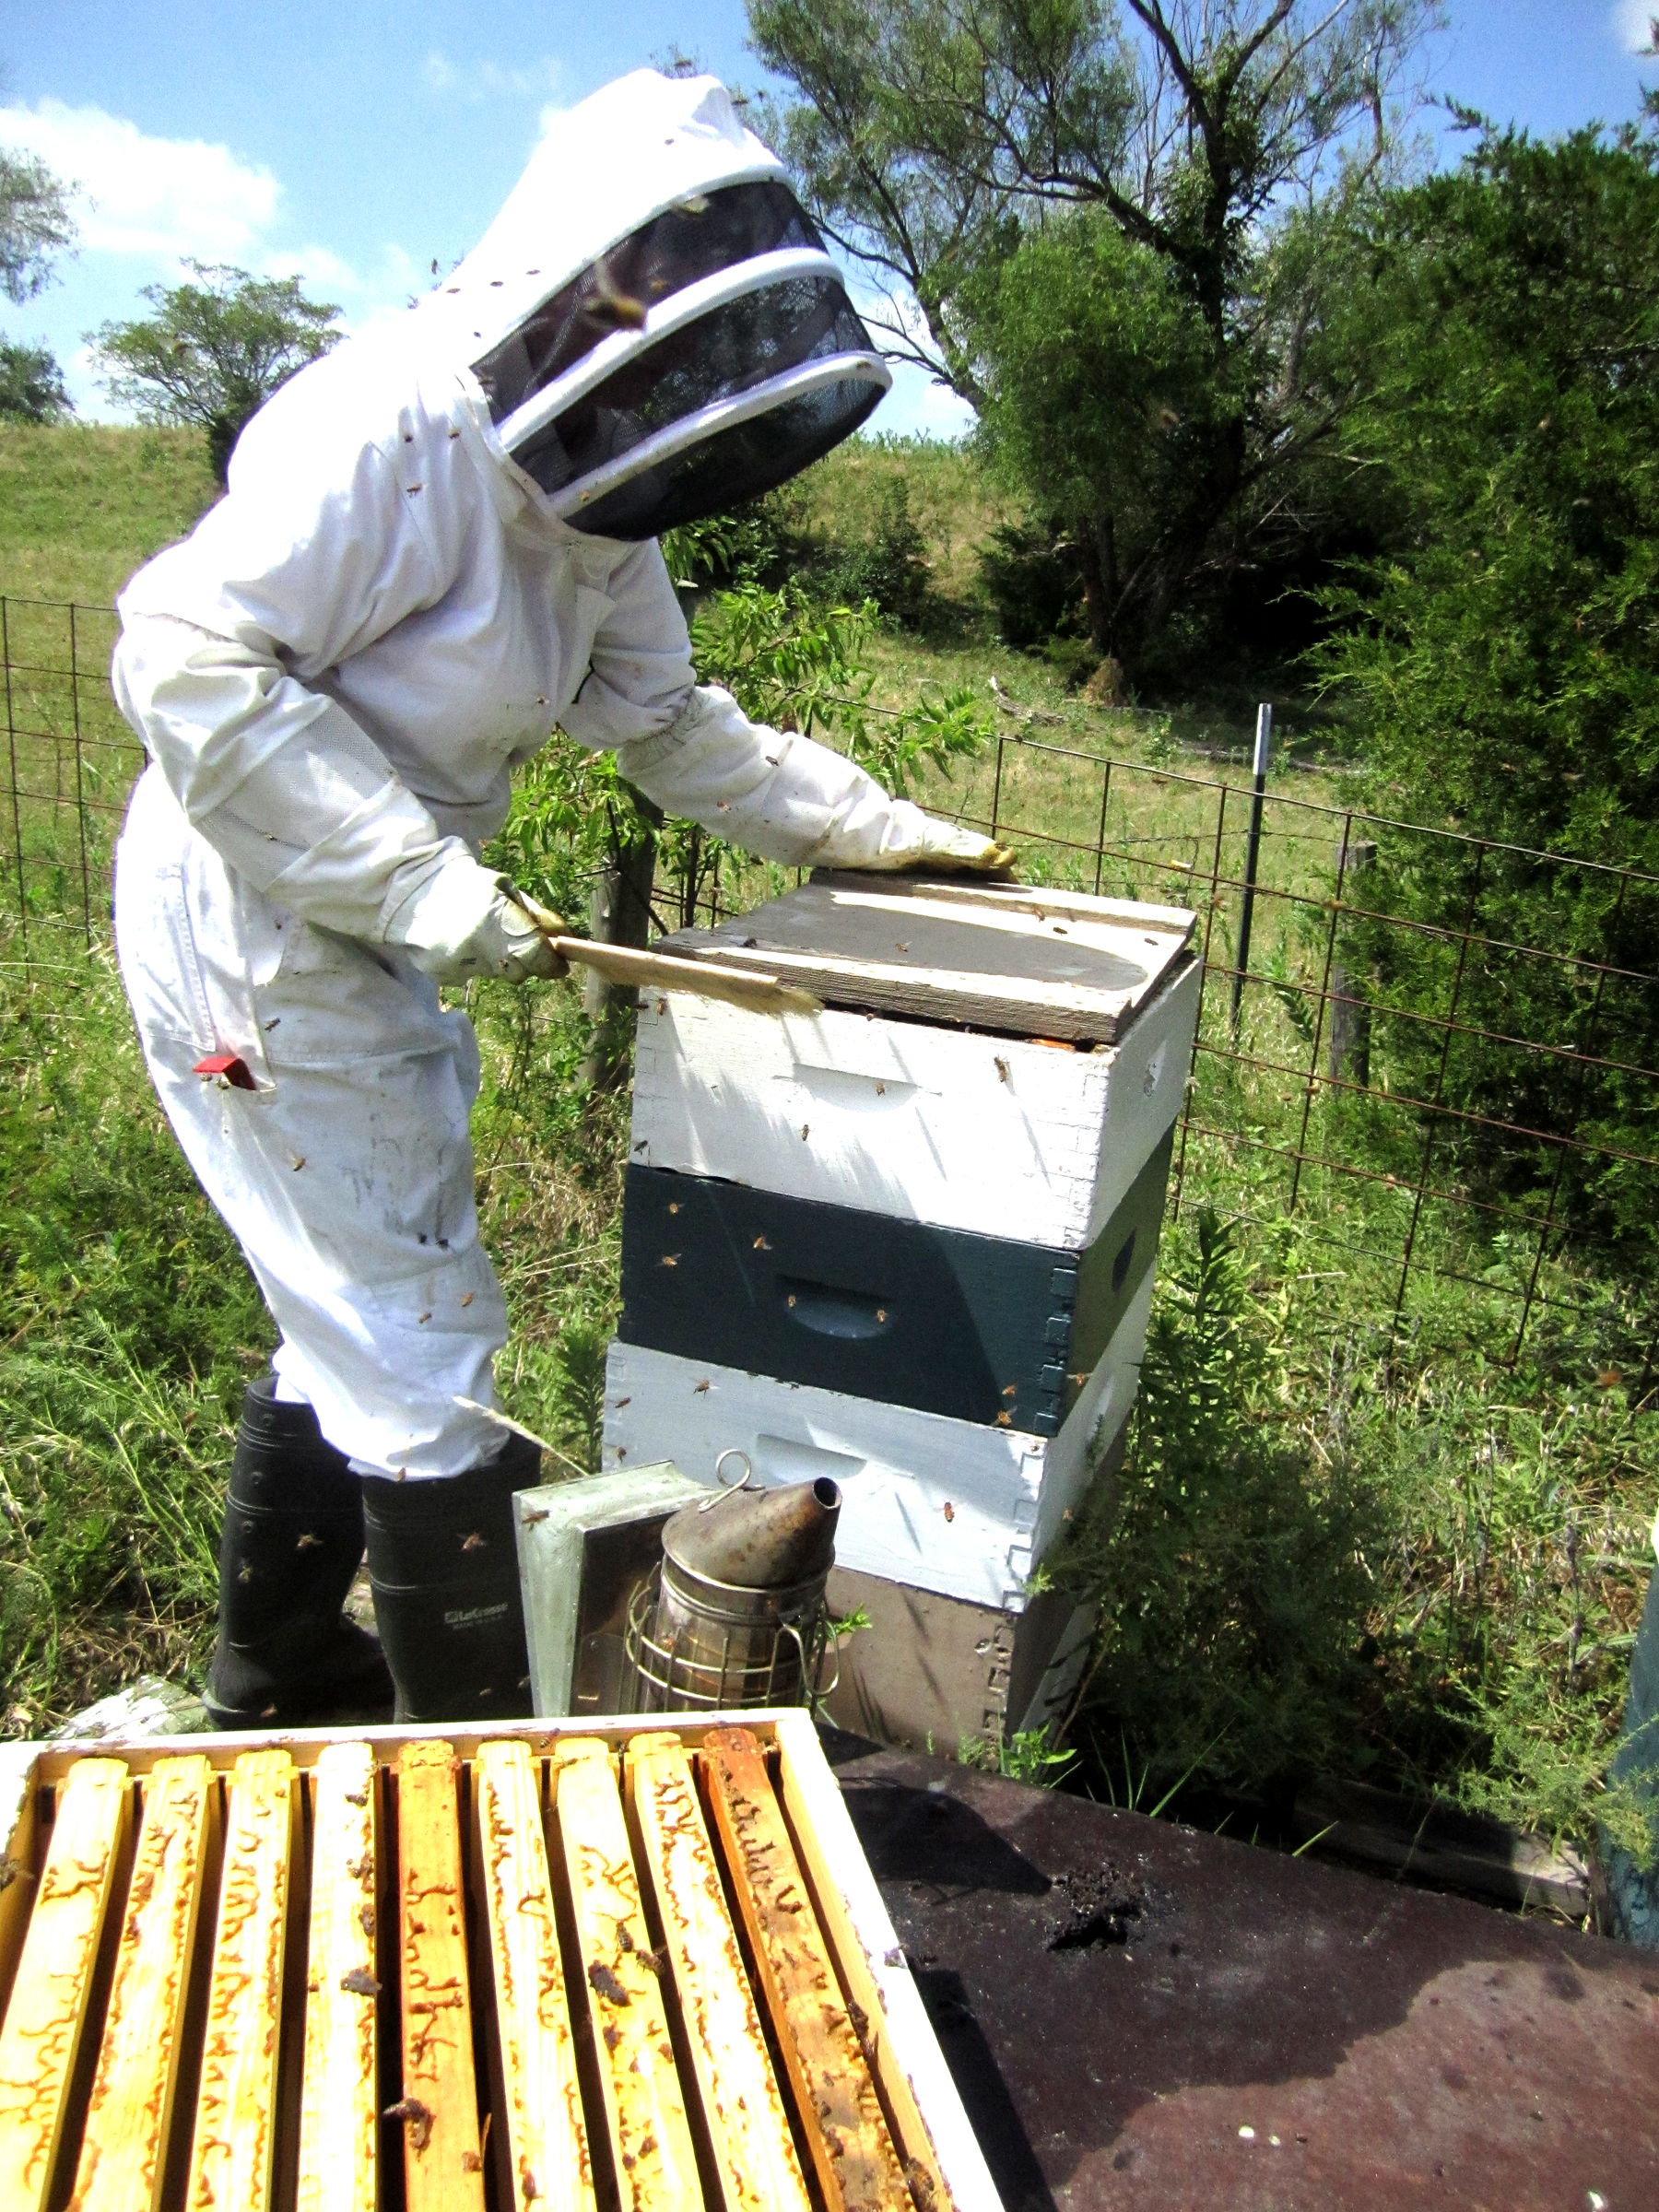 Opening each hive and removing frames full of capped honey - always being careful not to harm any bees.